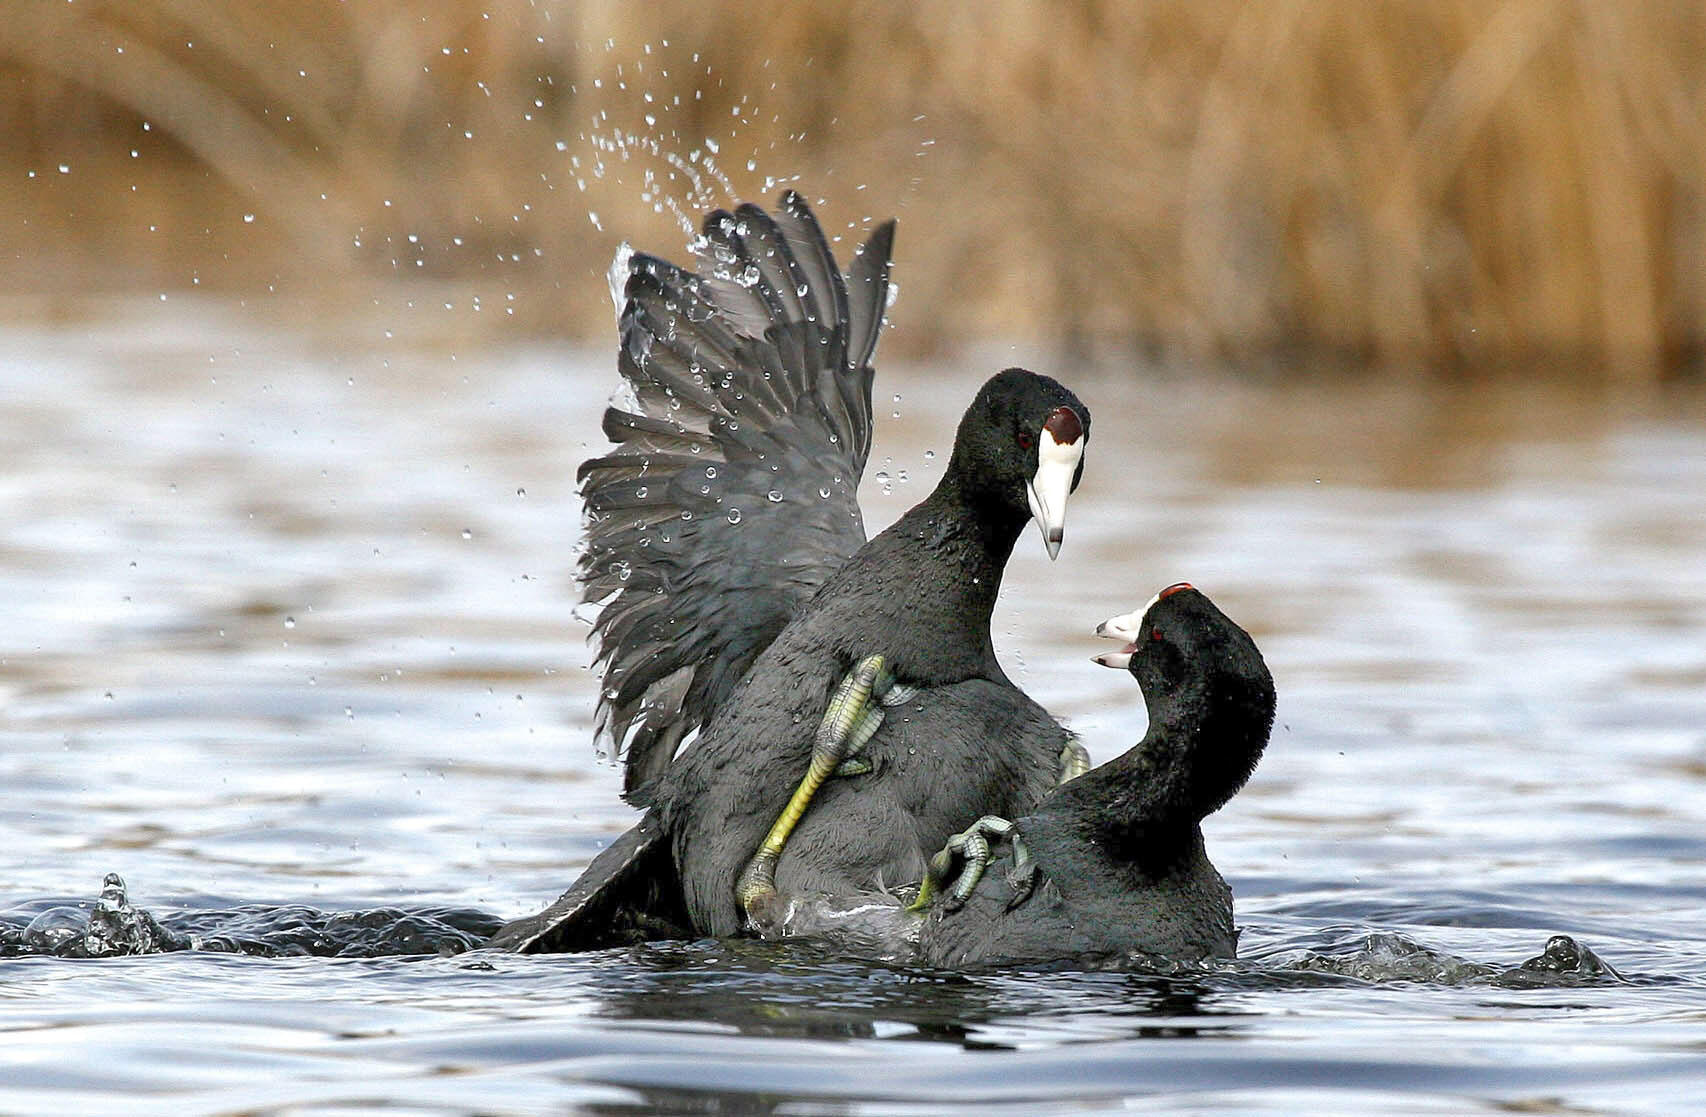 Male coots will use their feet in battles that can sometimes leave opponents injured. Bruce Lyon